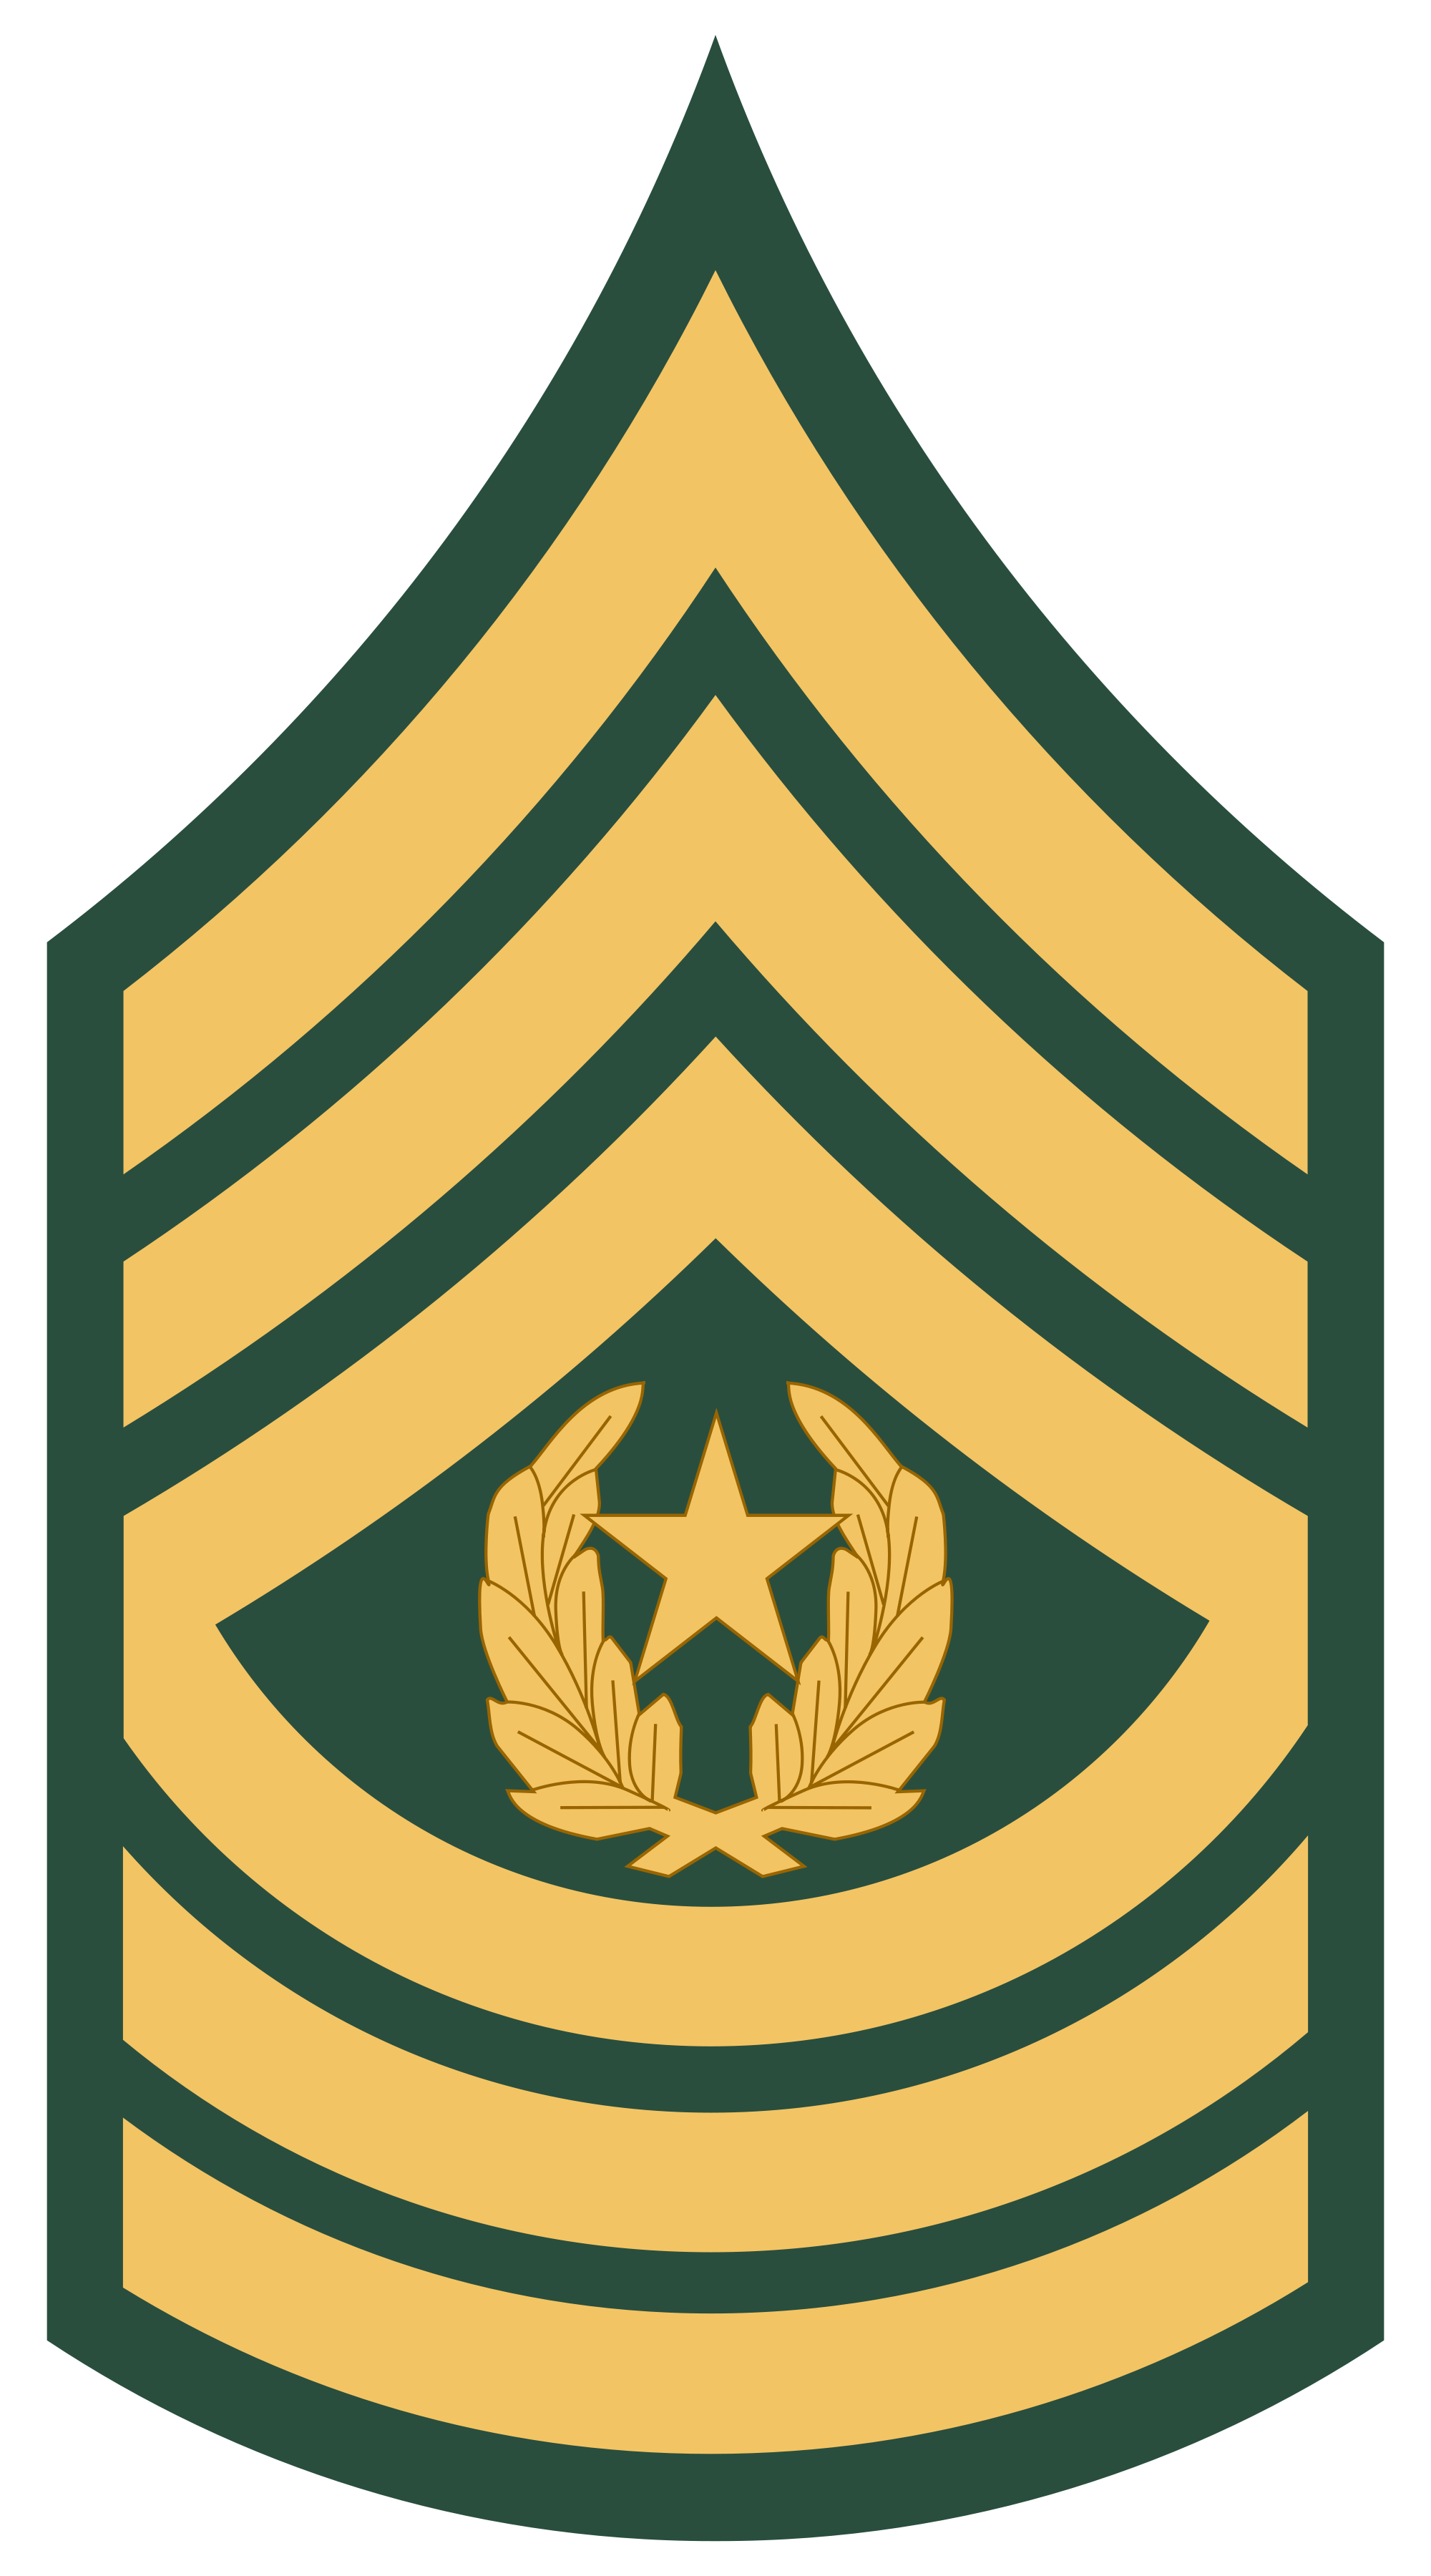 Command sergeant major clipart.